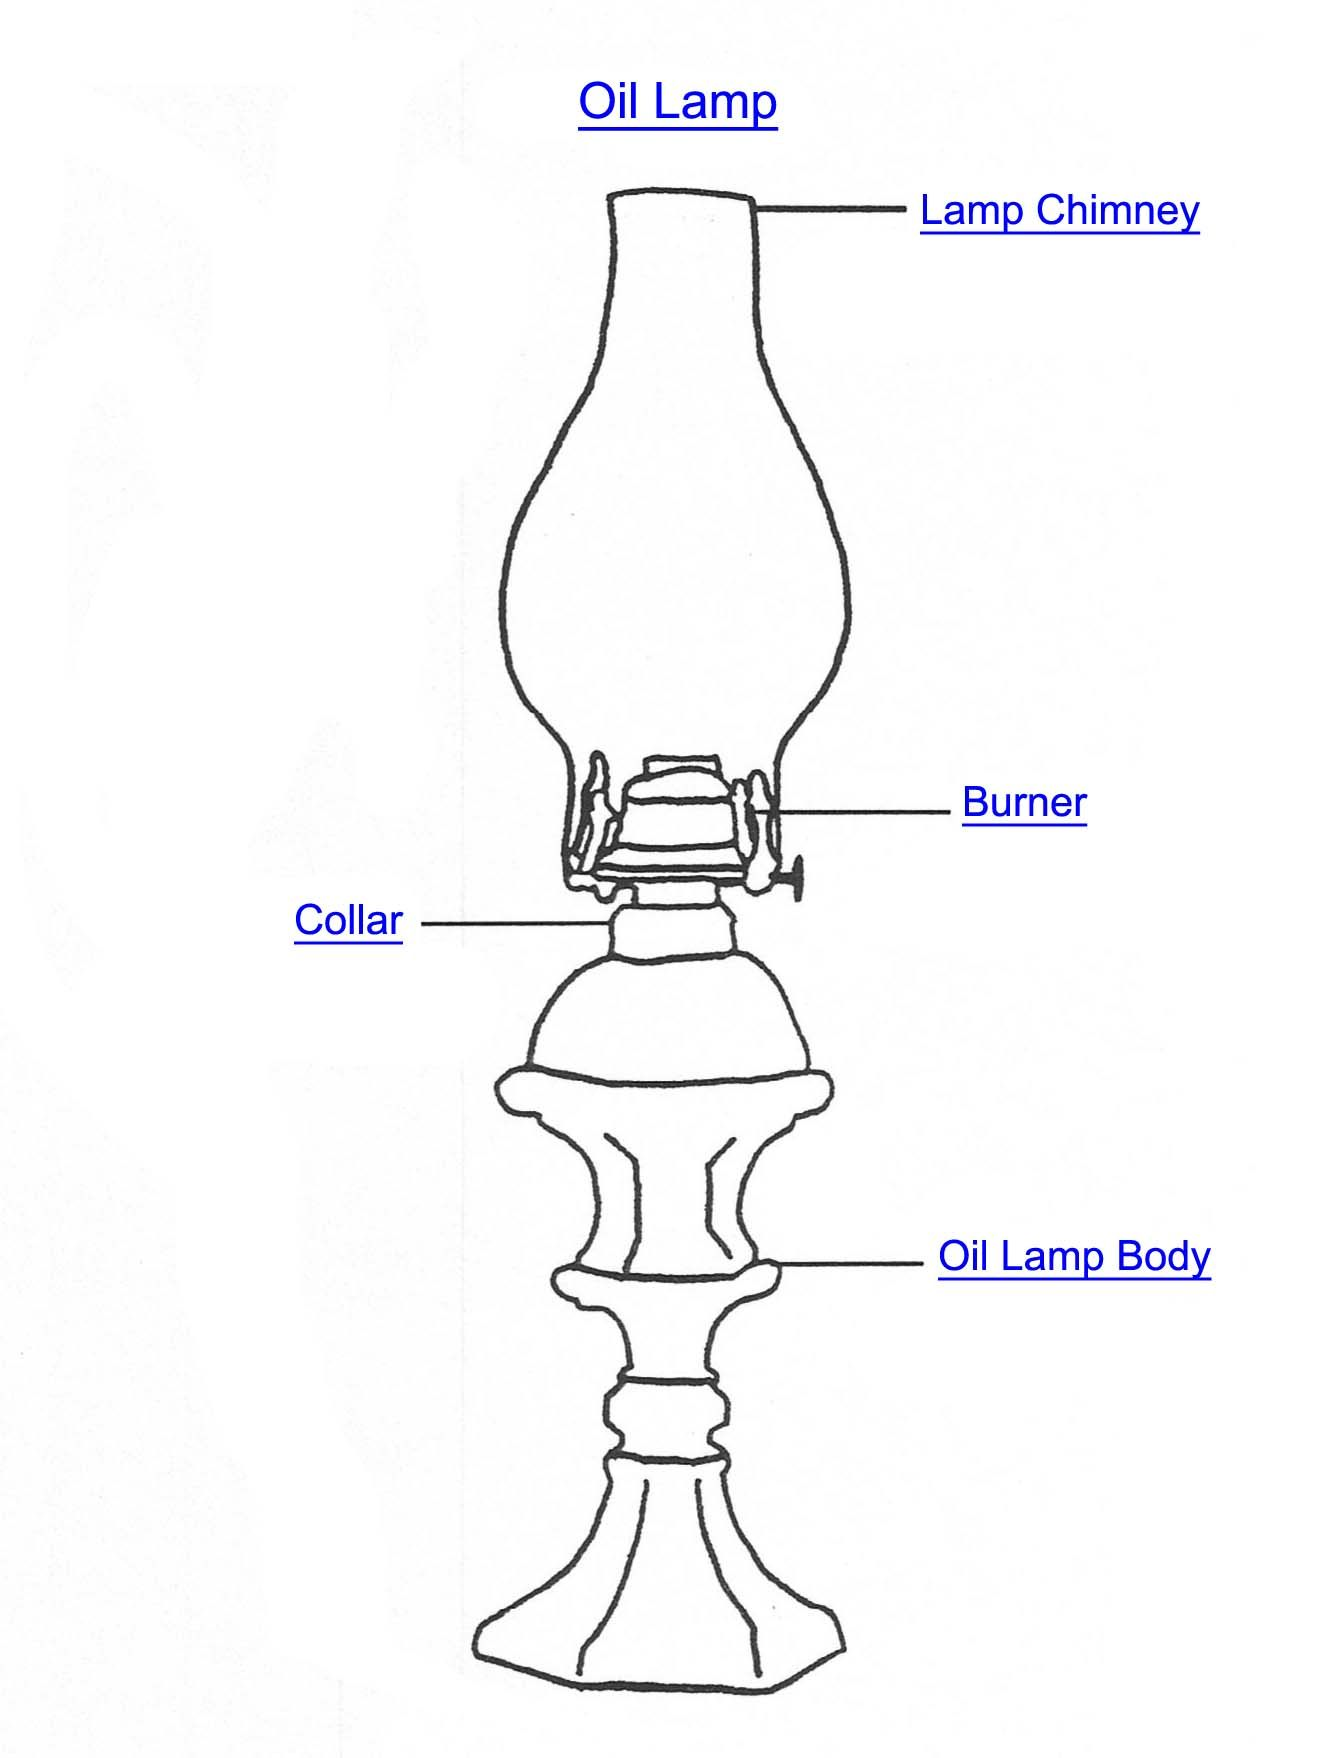 Check out httpslampclinic for the best lighting fixtures and antique lamp supply know oil lamp front to back we have been restoring and repairing oil lamps for many years arubaitofo Gallery